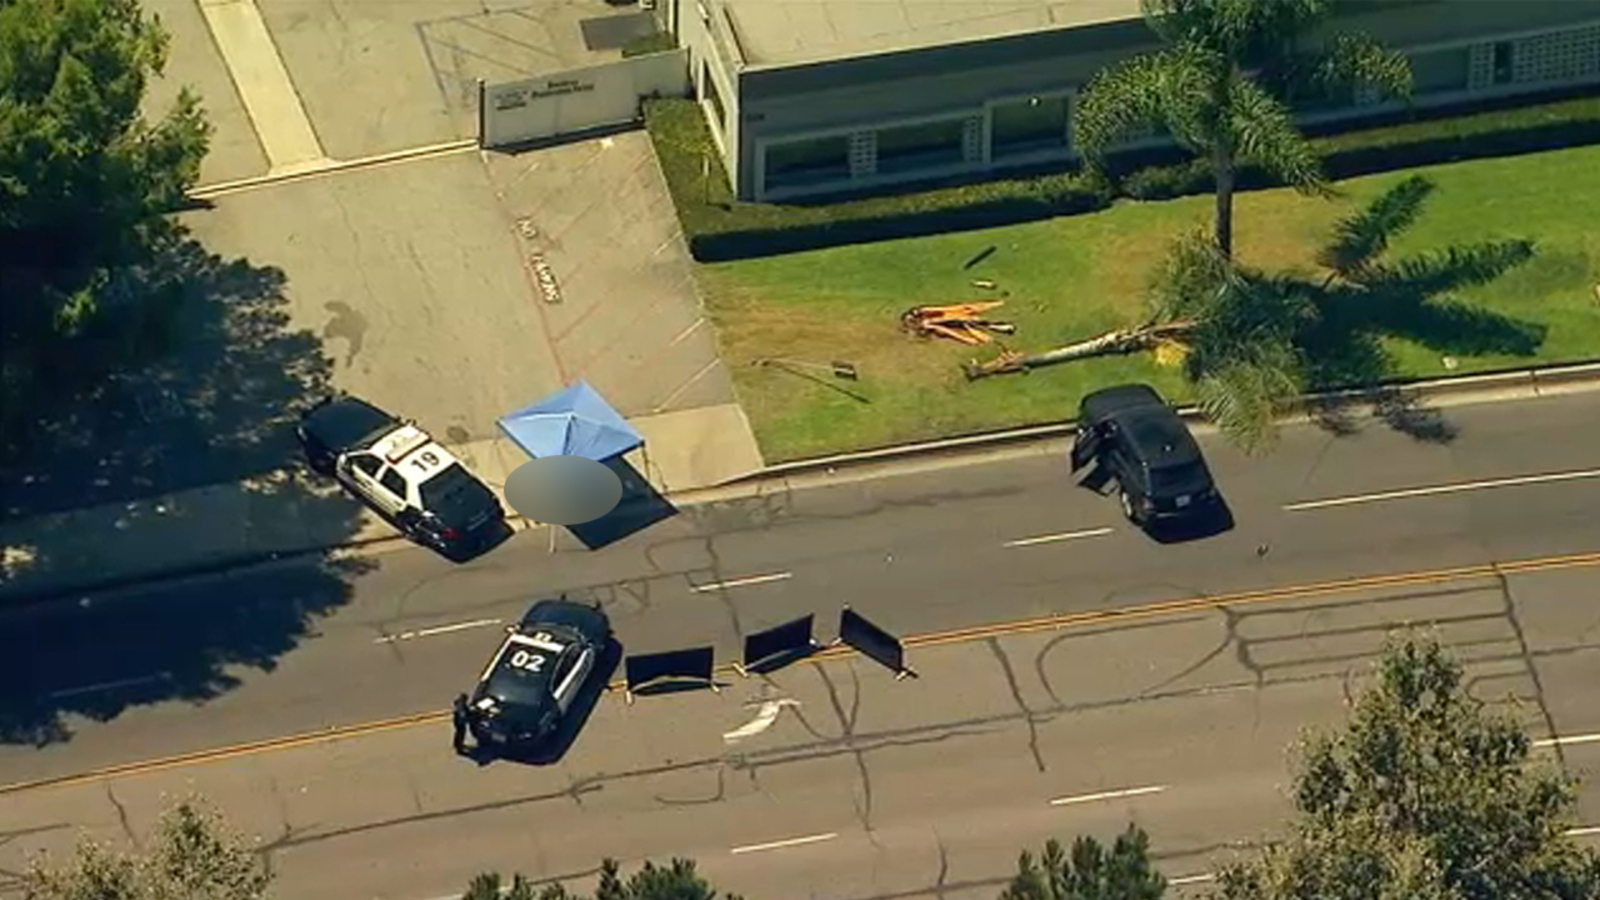 Fullerton: Traffic stop leads to fatal officer-involved shooting with Buena Park police